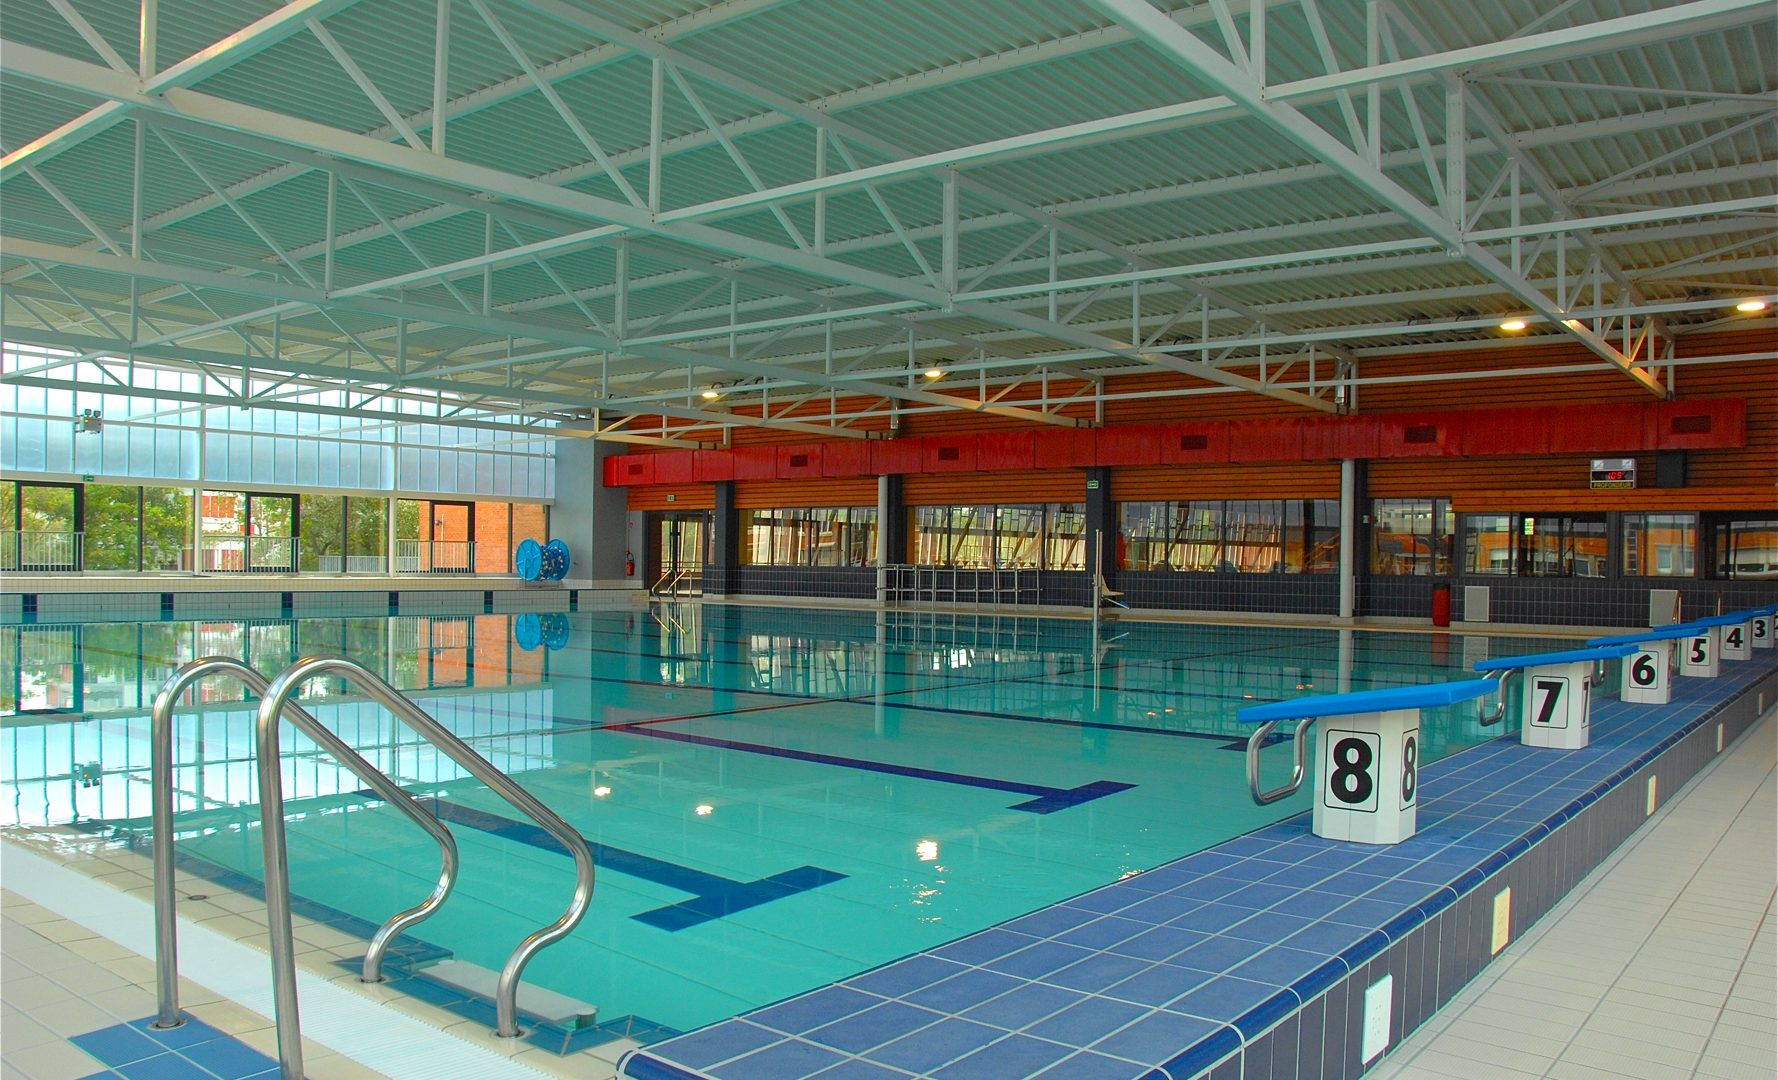 Piscine paul asseman dunkerke 59 eau air syst me for Piscine argenteuil